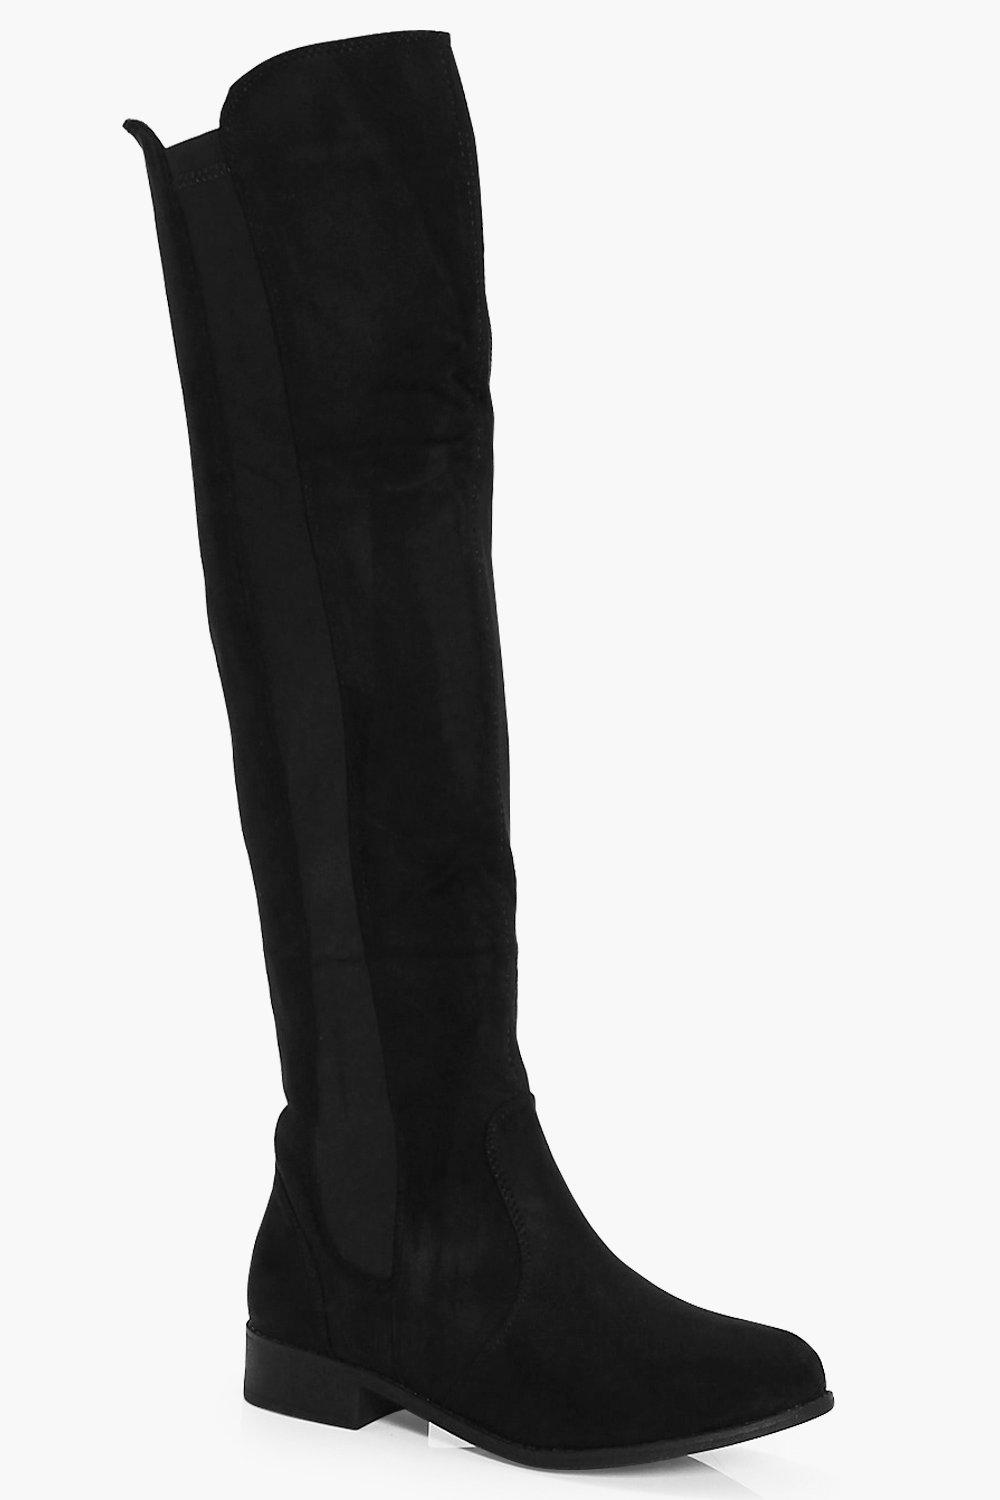 e3f82e0950d Flat Knee High Boots. Hover to zoom